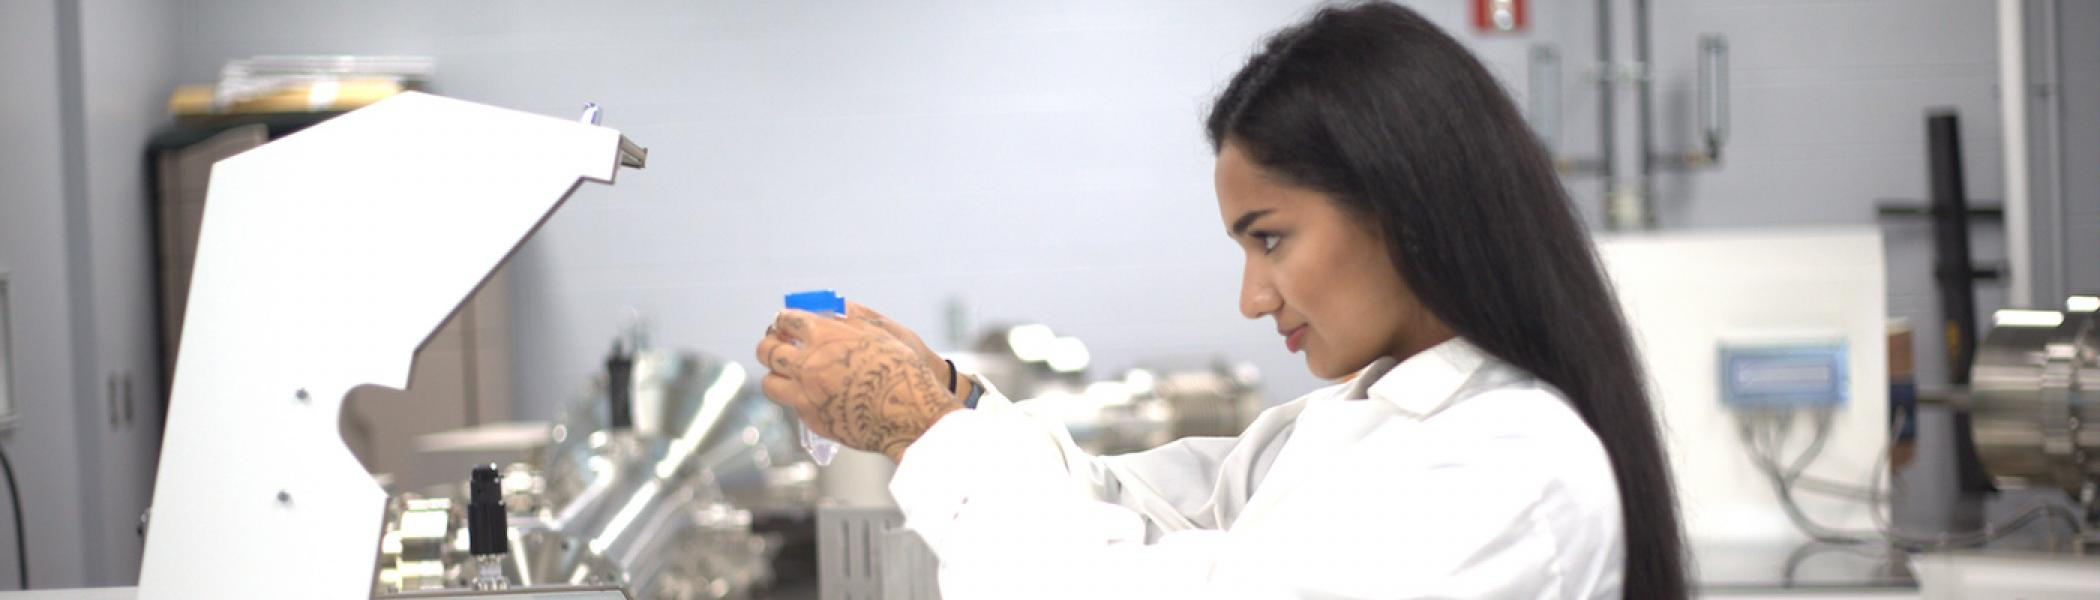 A girl looking at a tube in a lab